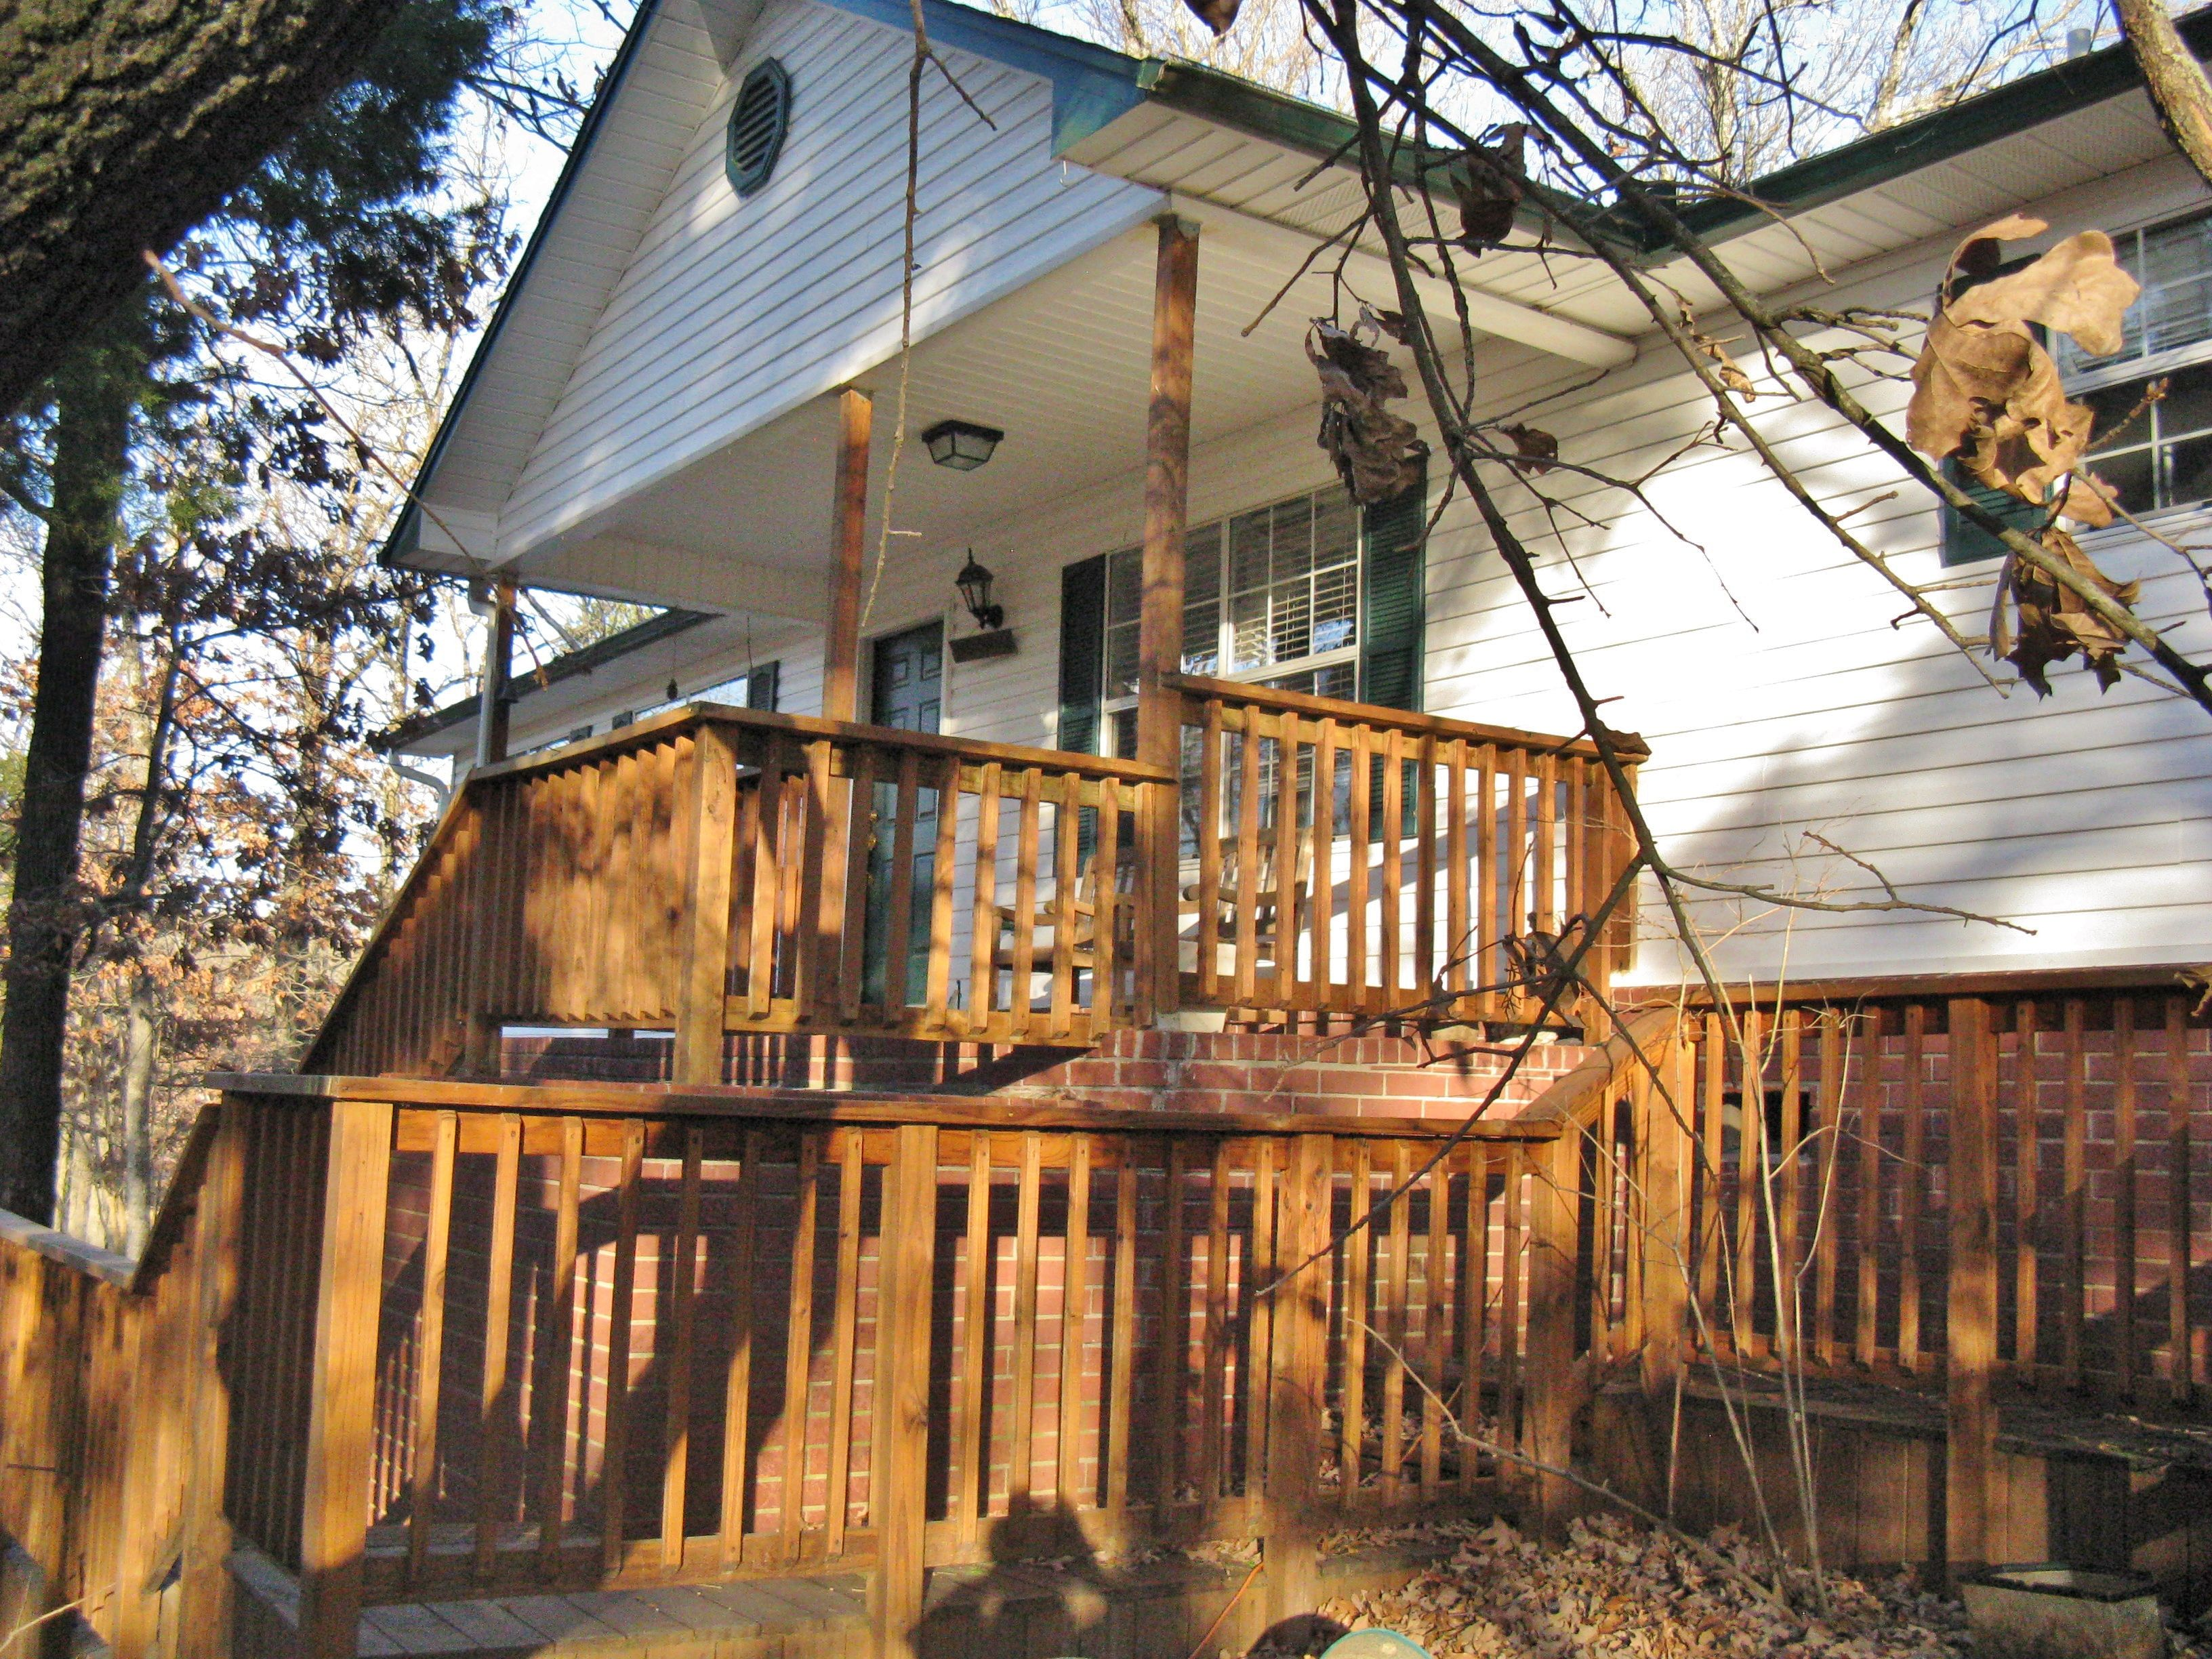 1931 Hwy 348 Rudy- $147,000 Your dream home in the country., but only 5 min to town.  You will love the view from every window in this lovely home sitting on 1 acre with 2 wonderful decks among the trees. Click here to view the virtual tour: http://instatour.propertypanorama.com/instaview/fts/705748 Call Ramona Roberts Realtors or visit our website www.ramonaroberts.com for more information, photos, and directions.